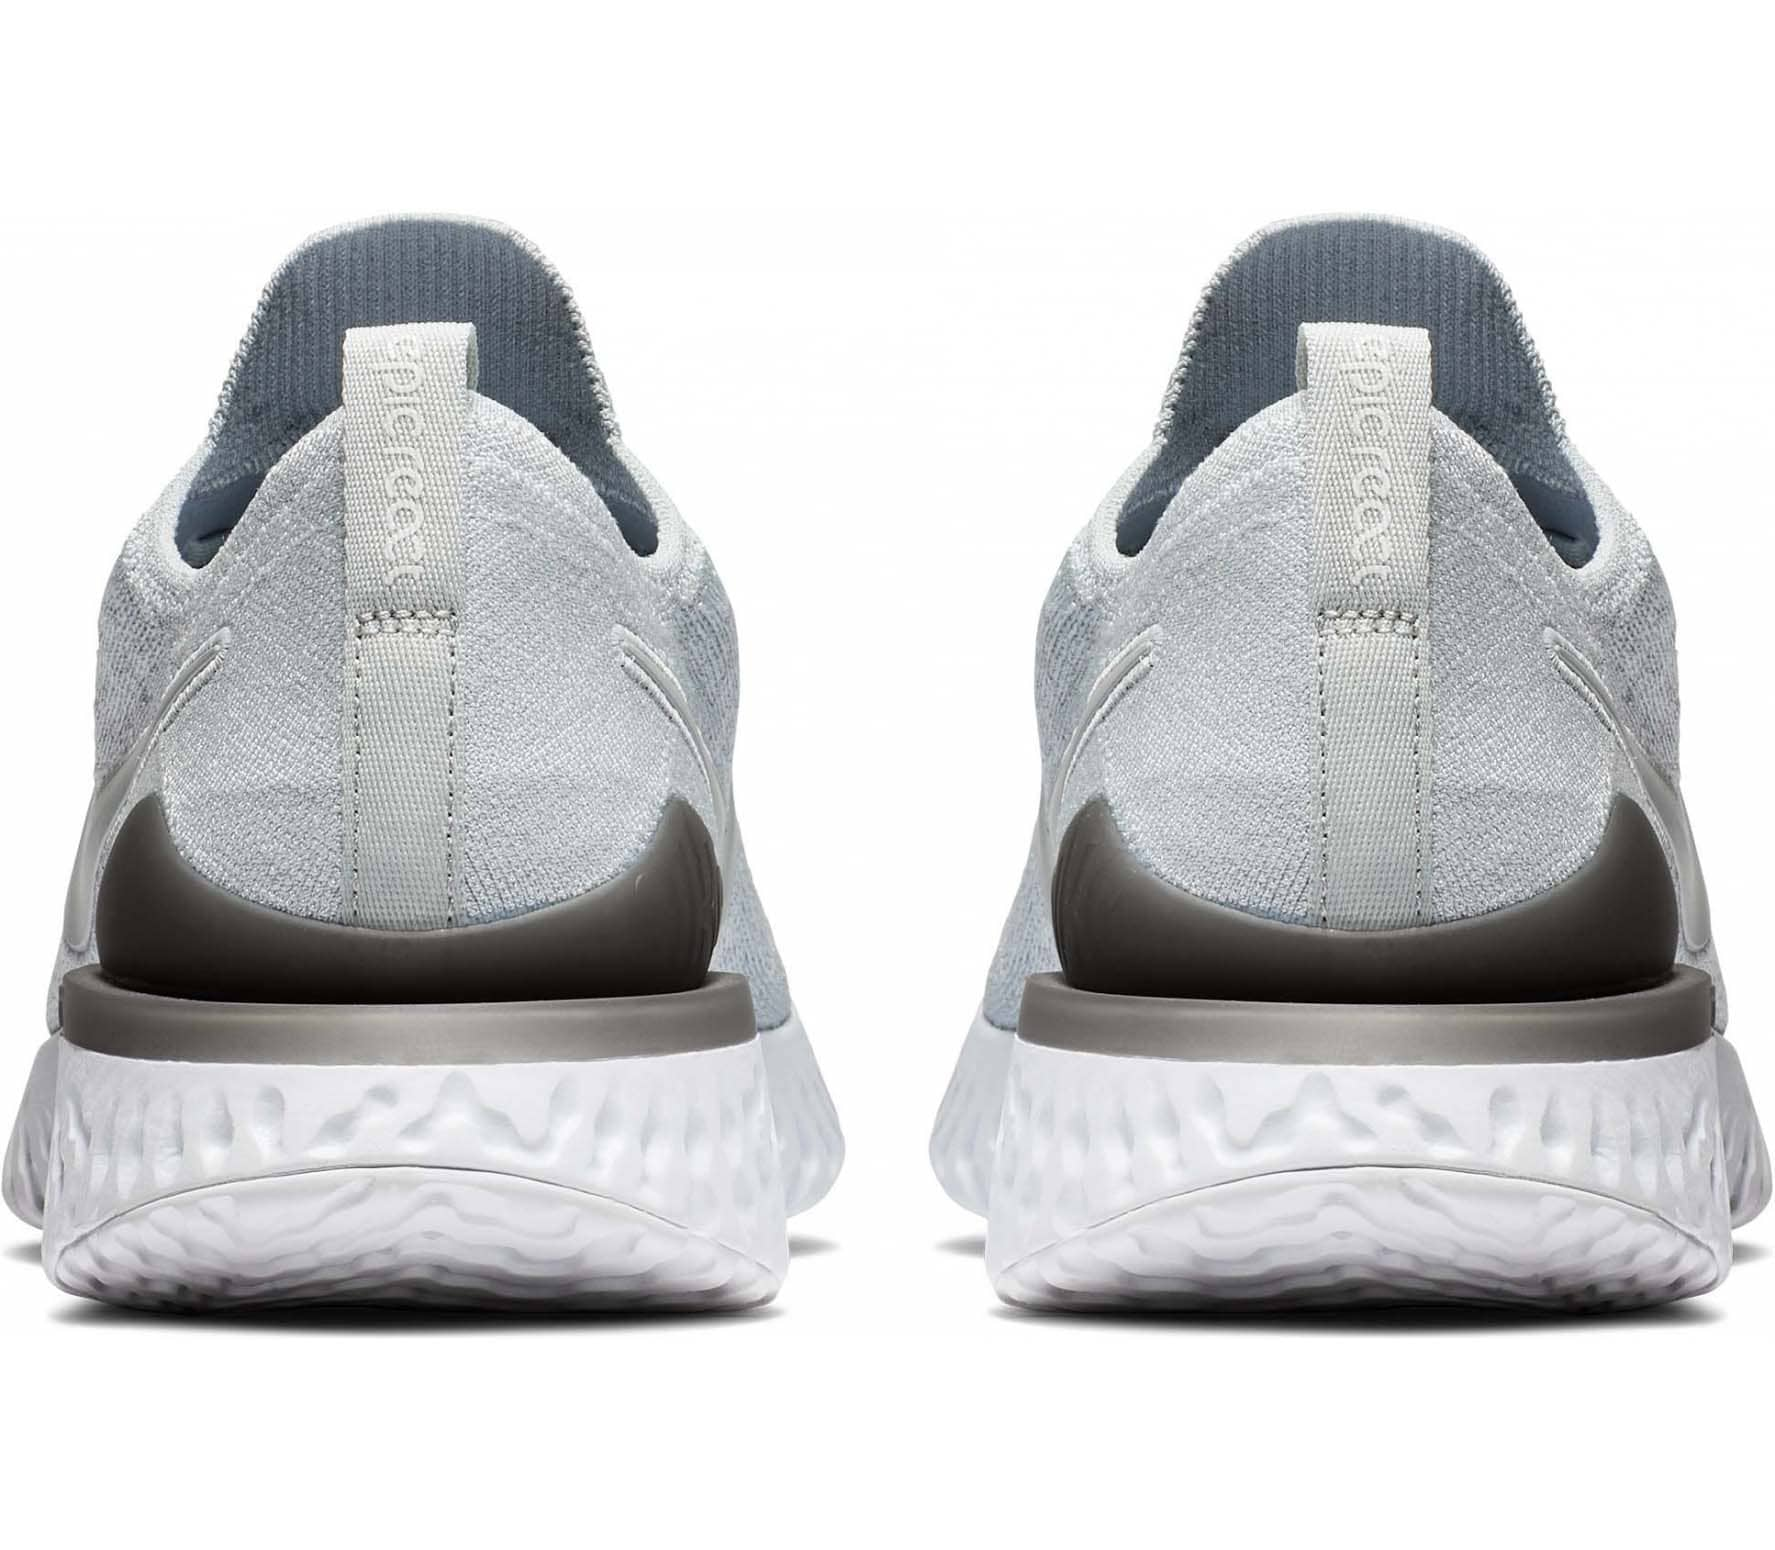 Nike - Epic React Flyknit 2 chaussures de running pour hommes (blanc/gris)